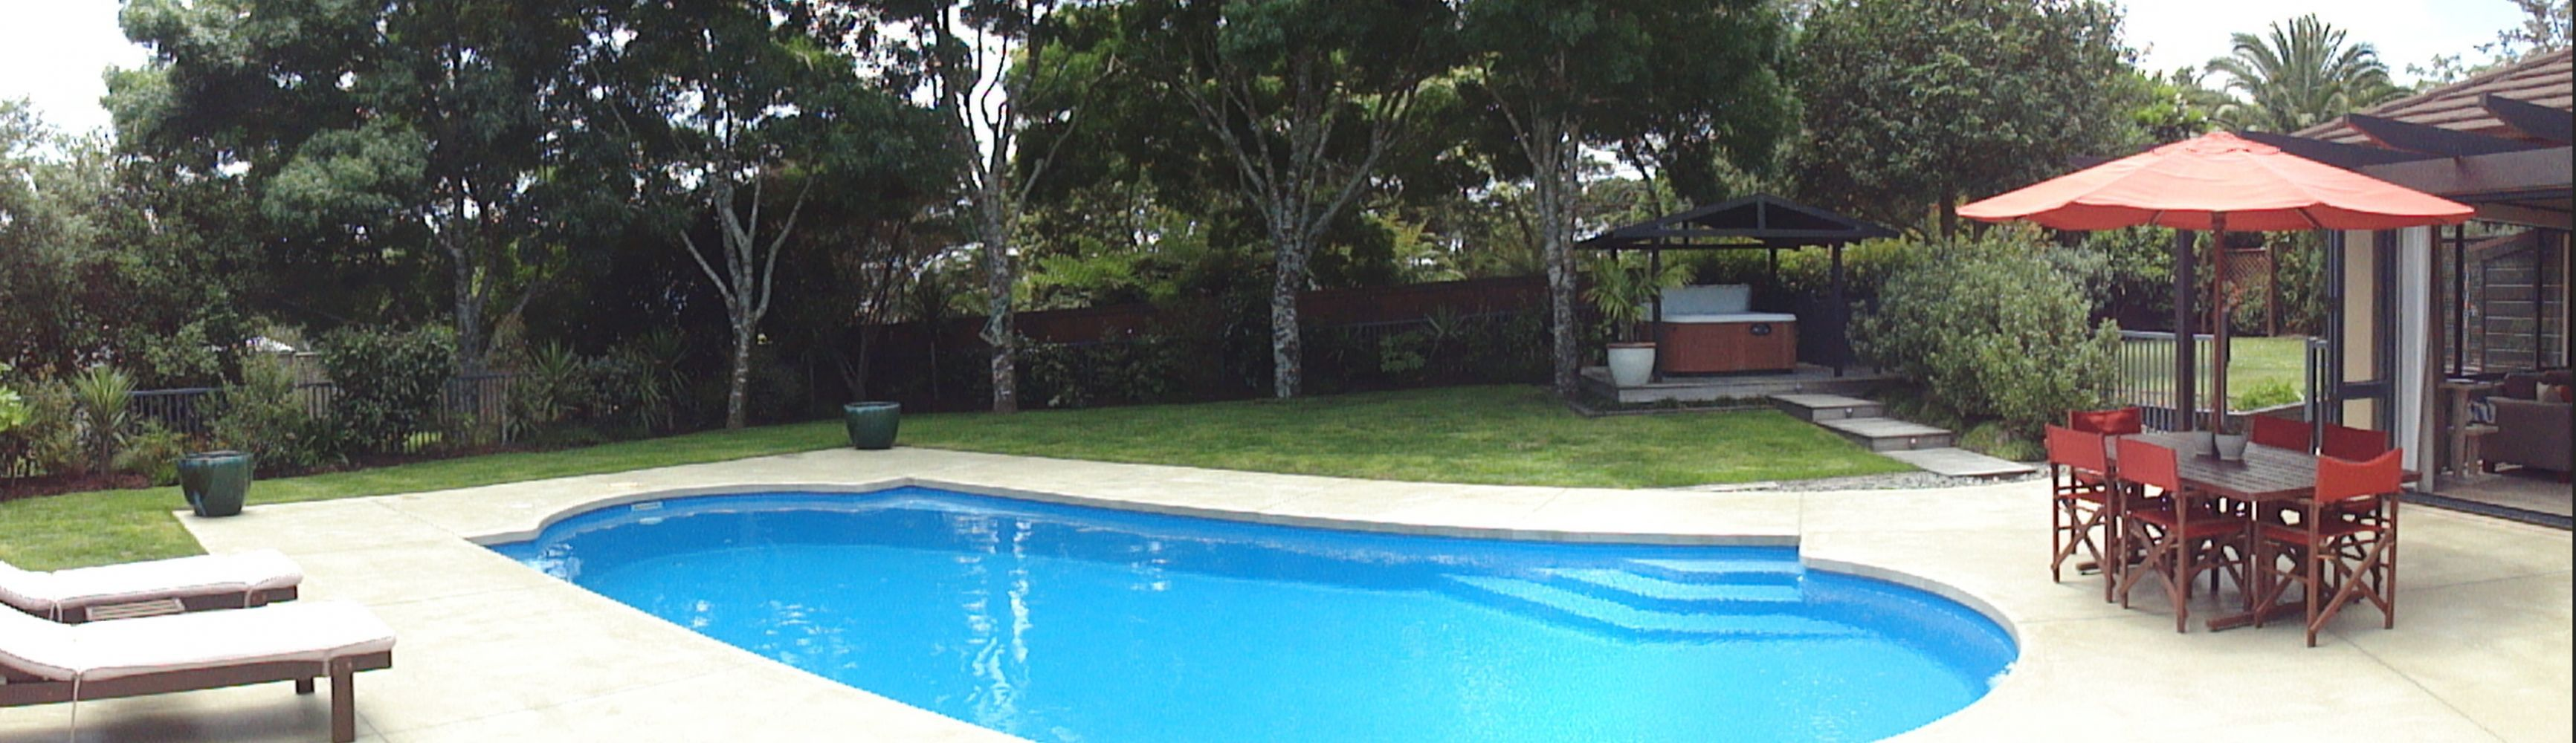 Pool concrete construction in Auckland